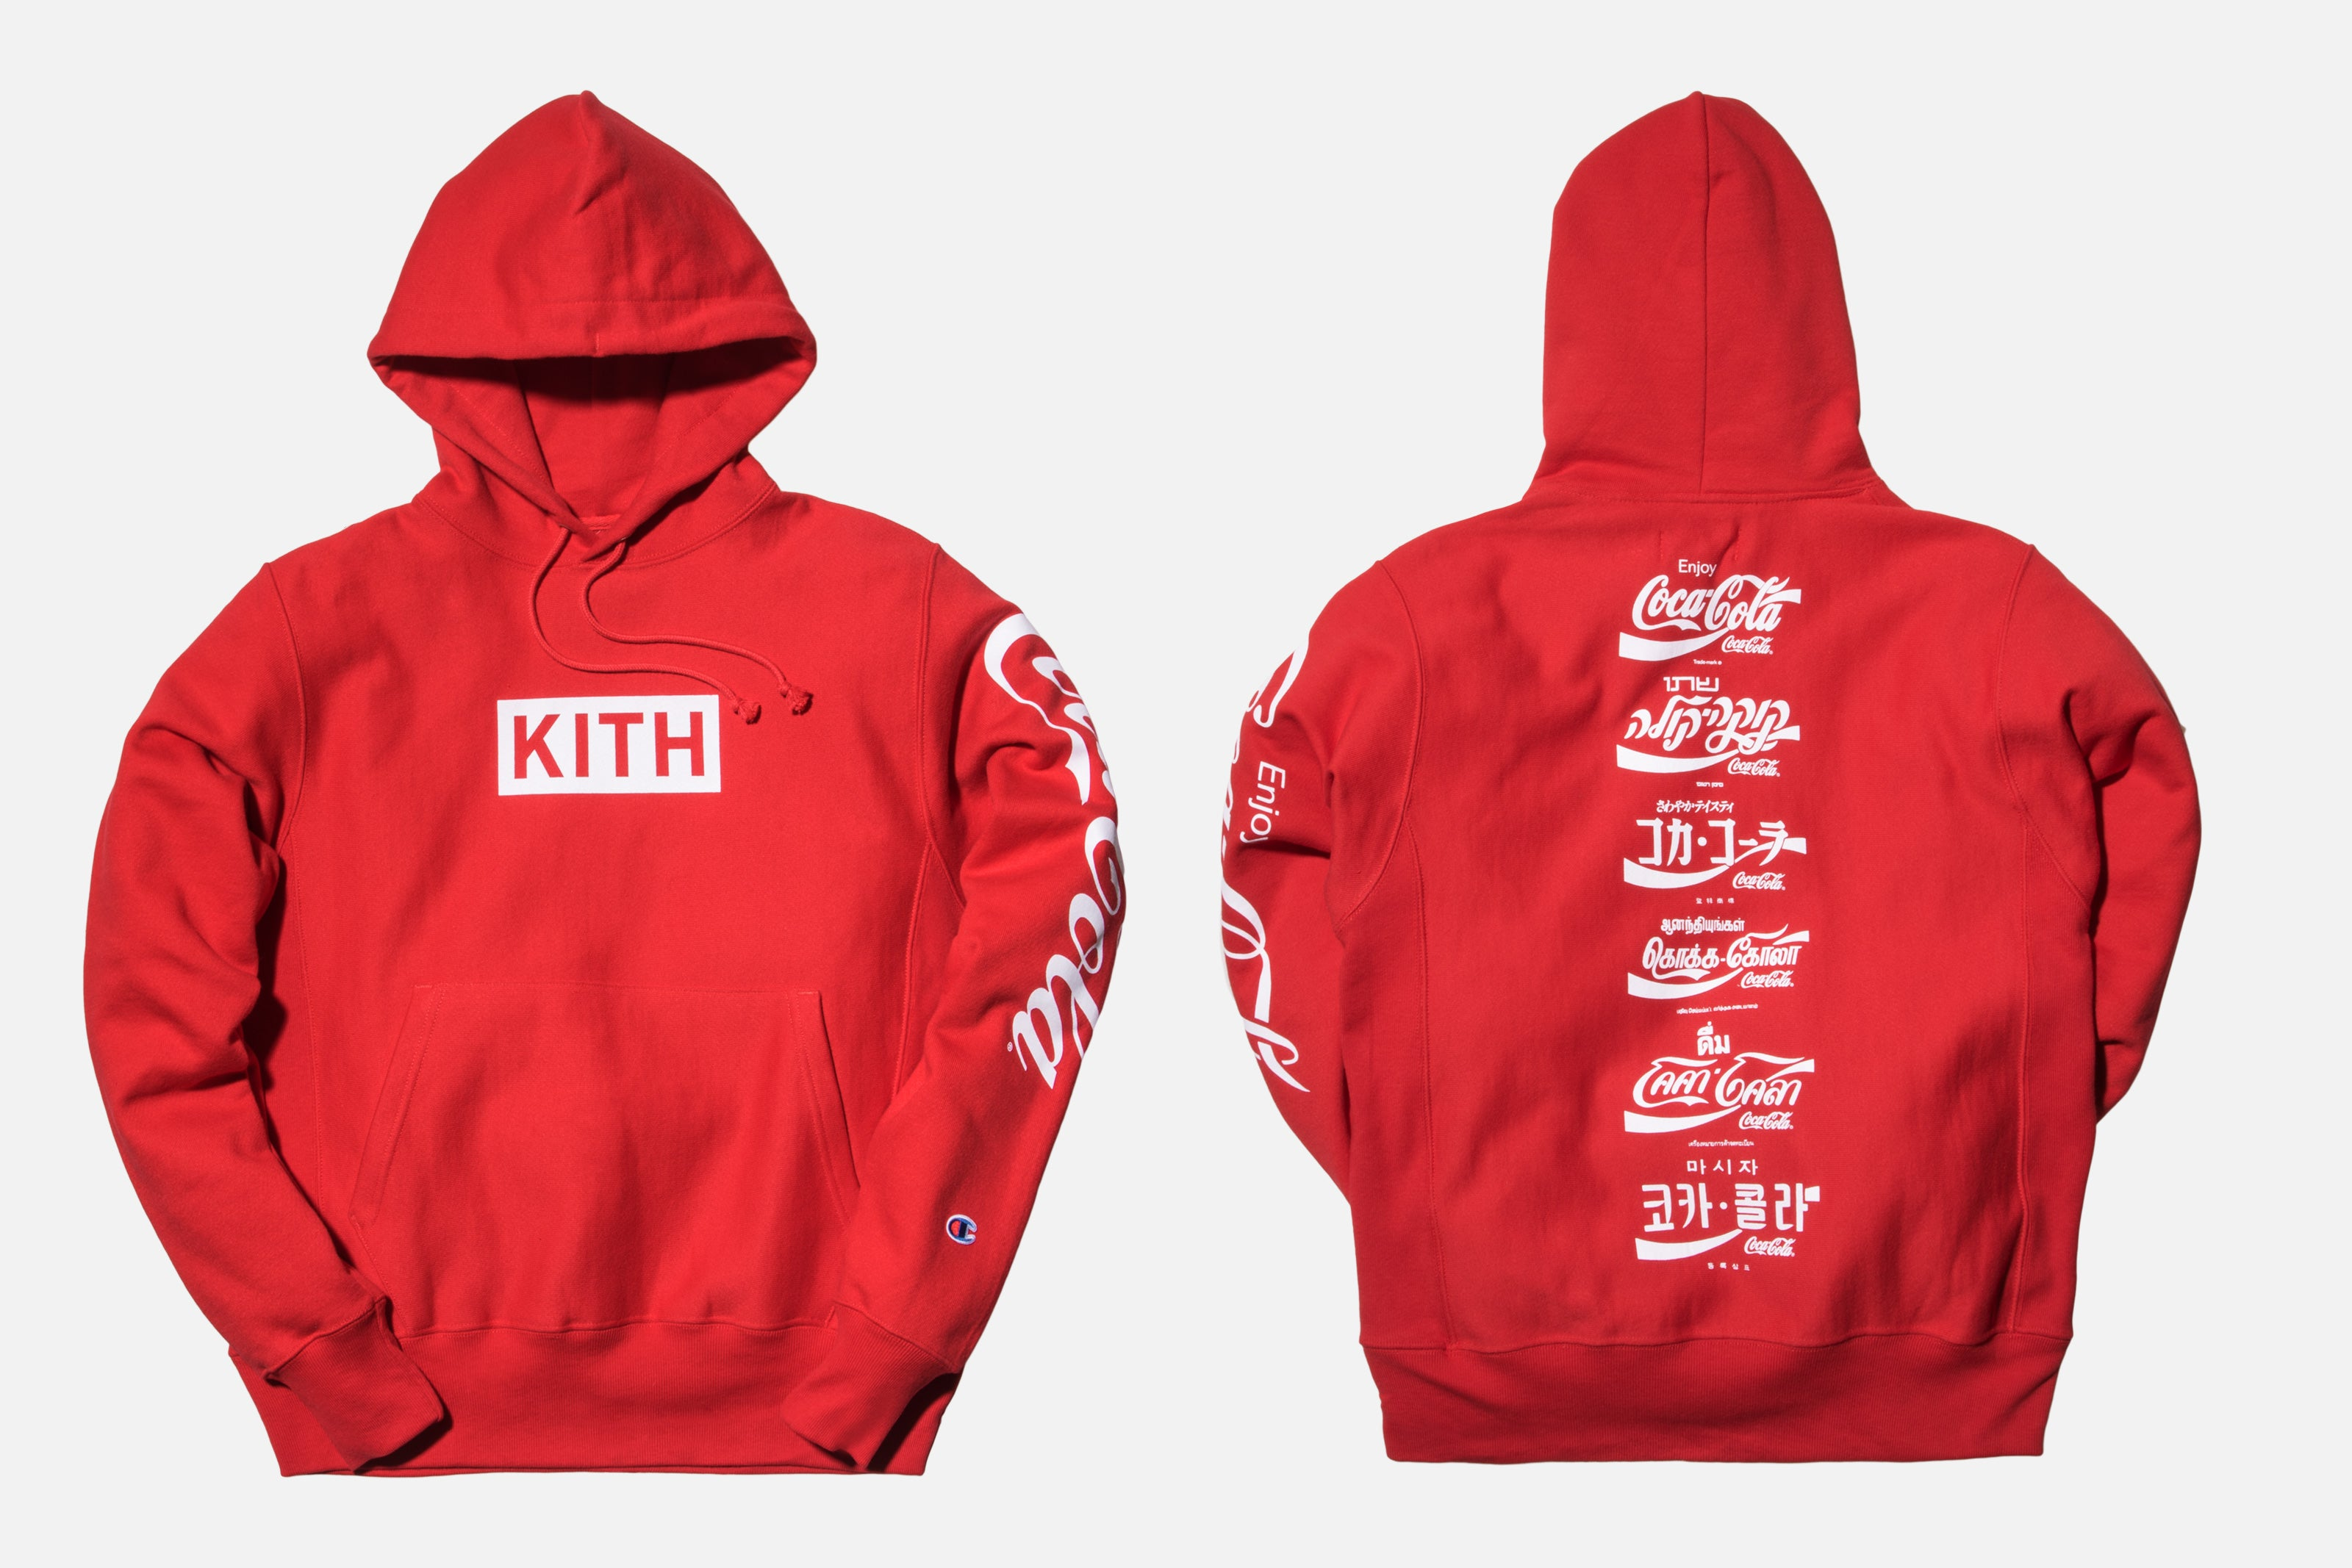 5c0f23d0464 A Closer Look at the Kith x Coca-Cola Collection